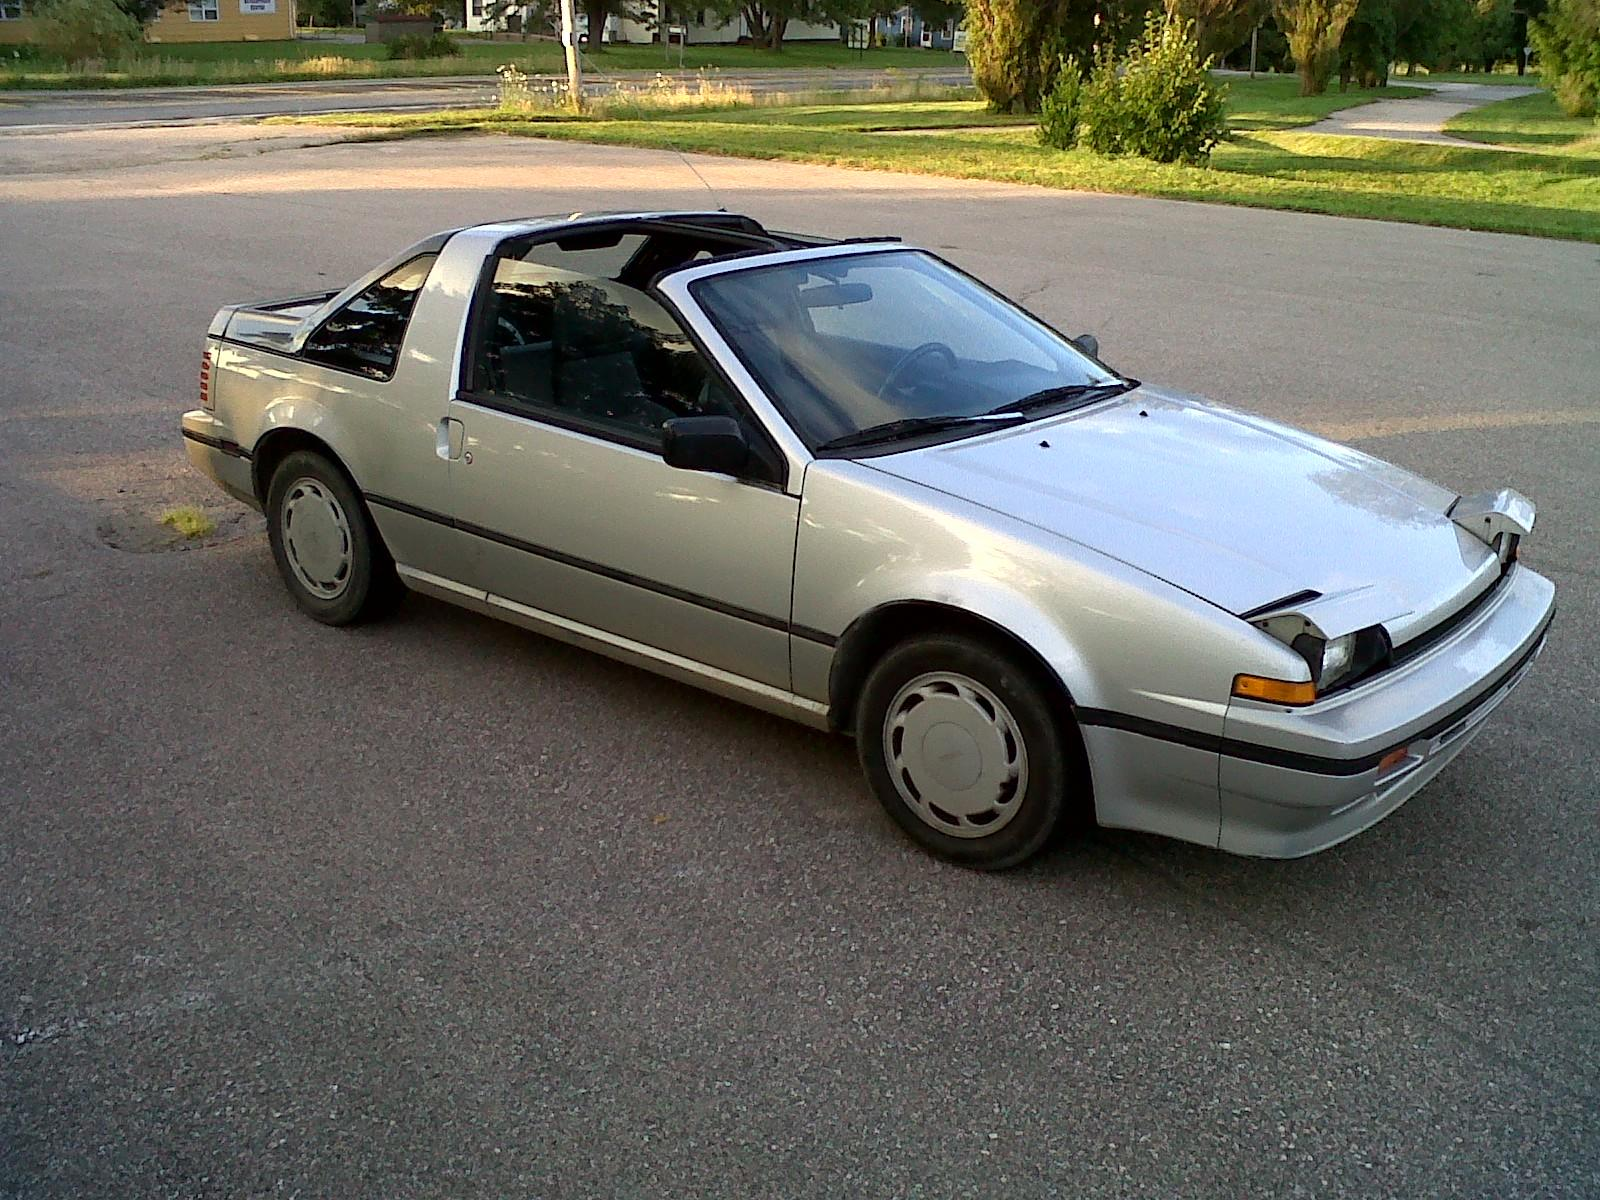 87nissanse 1987 Nissan Pulsar Specs, Photos, Modification ...